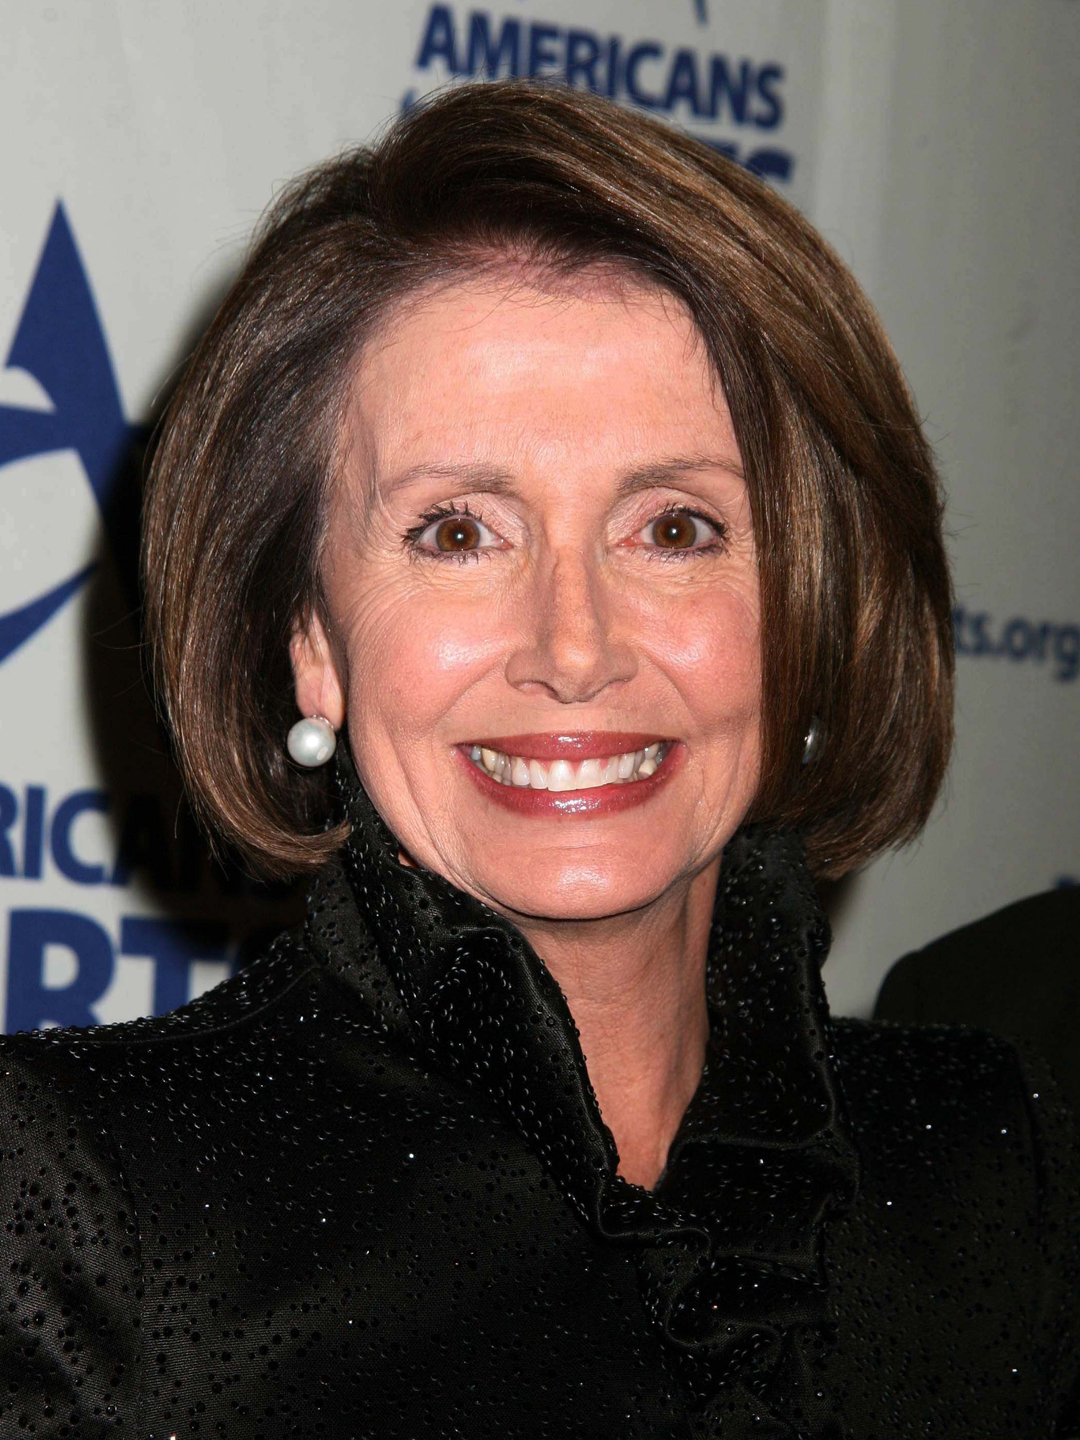 Image result for nancy pelosi